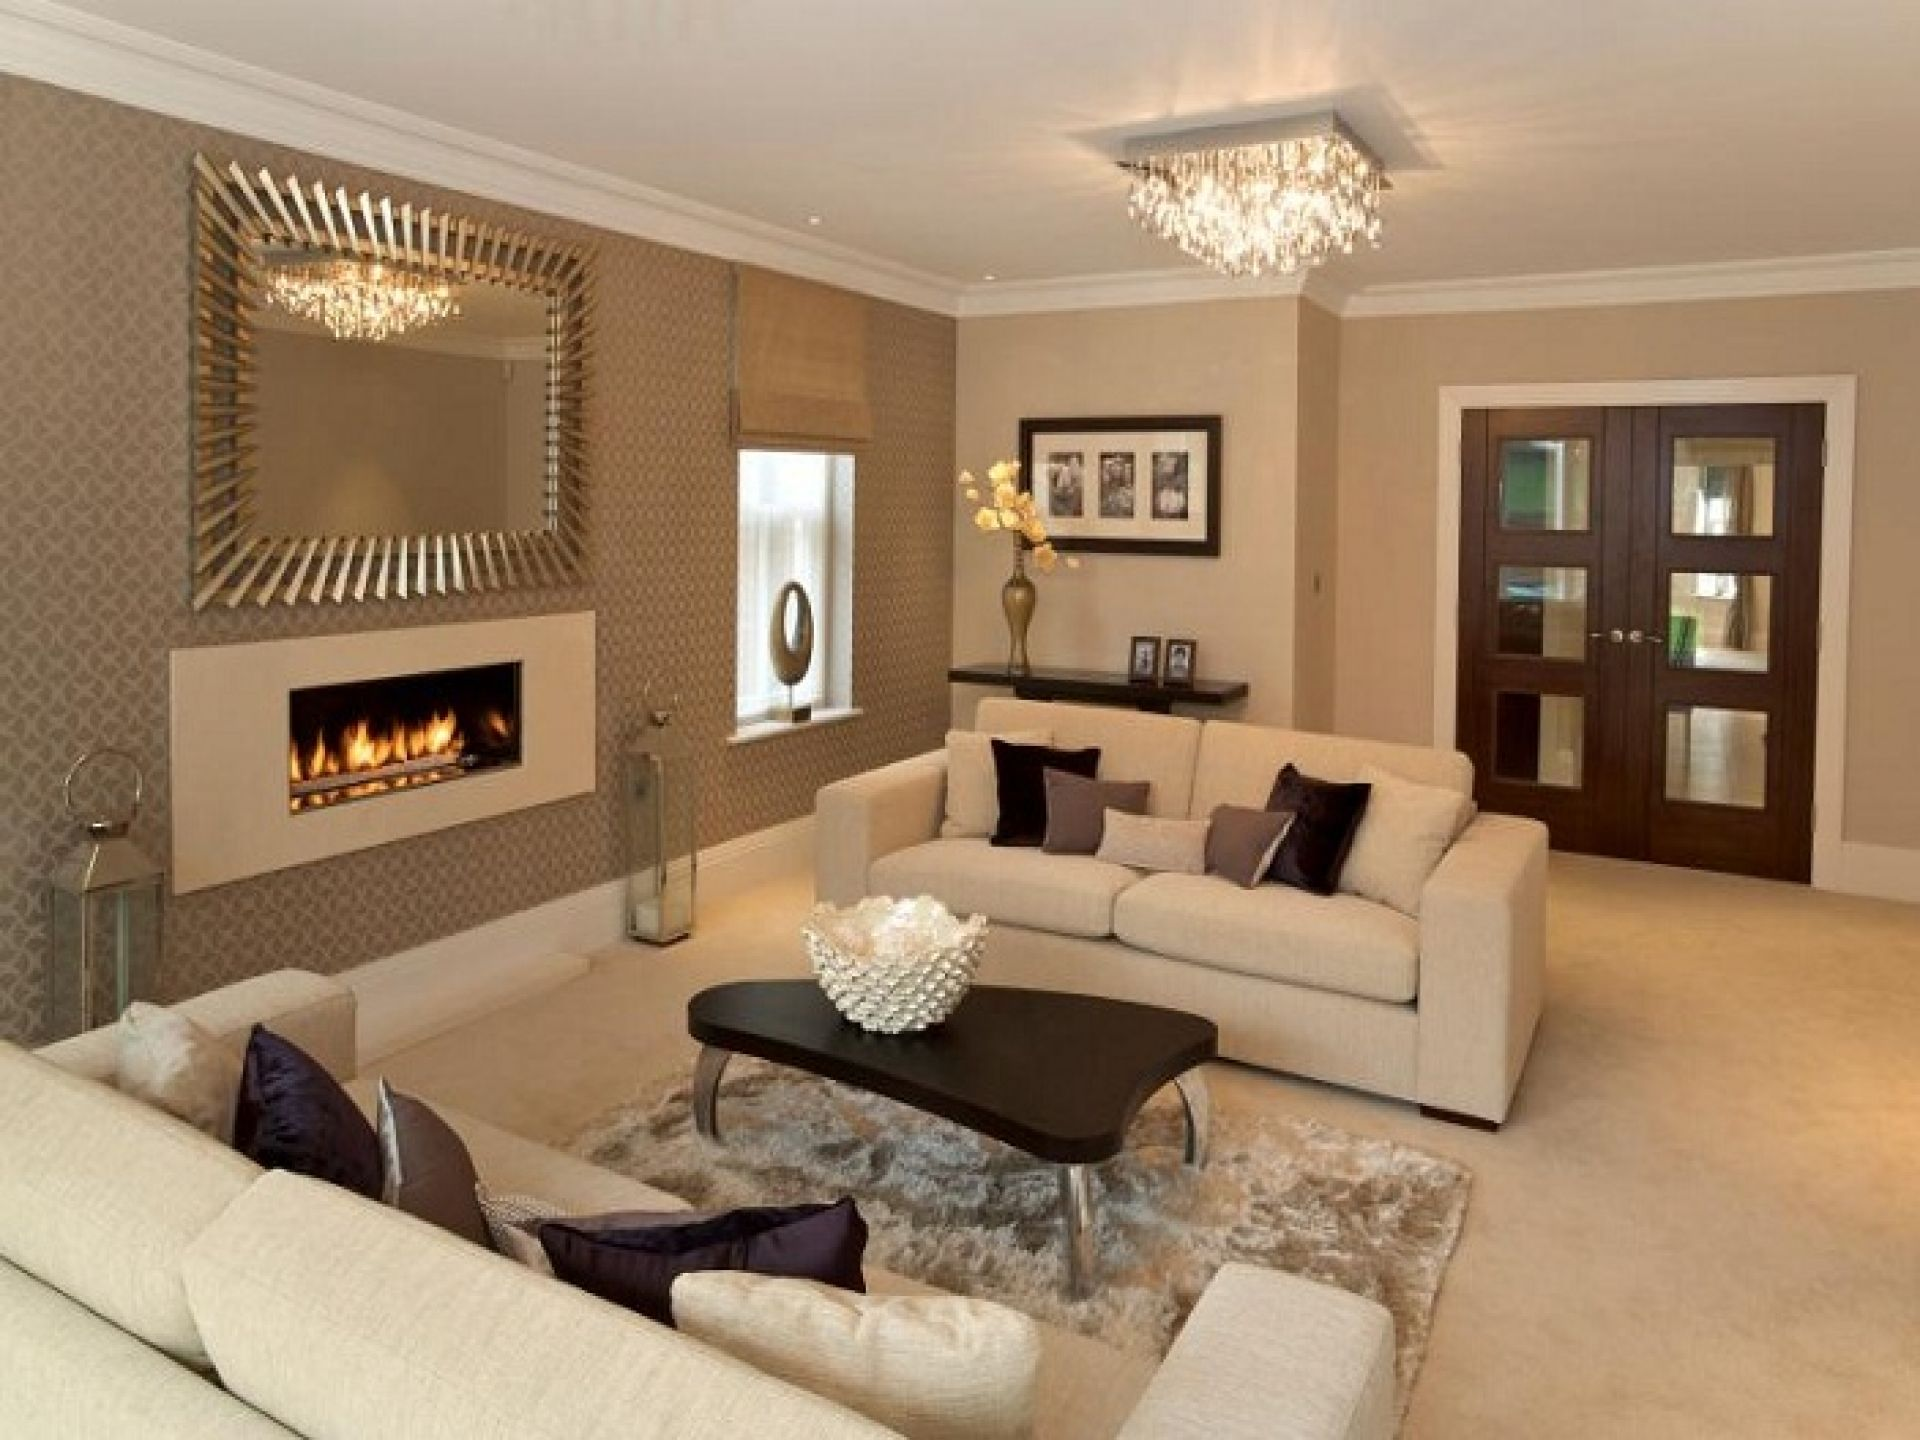 Decoration Cream Grey Combine Wall Paint Color Schemes Living Room With White Ceiling And Sofa Also Small Black Wood Top Table Fireplace On